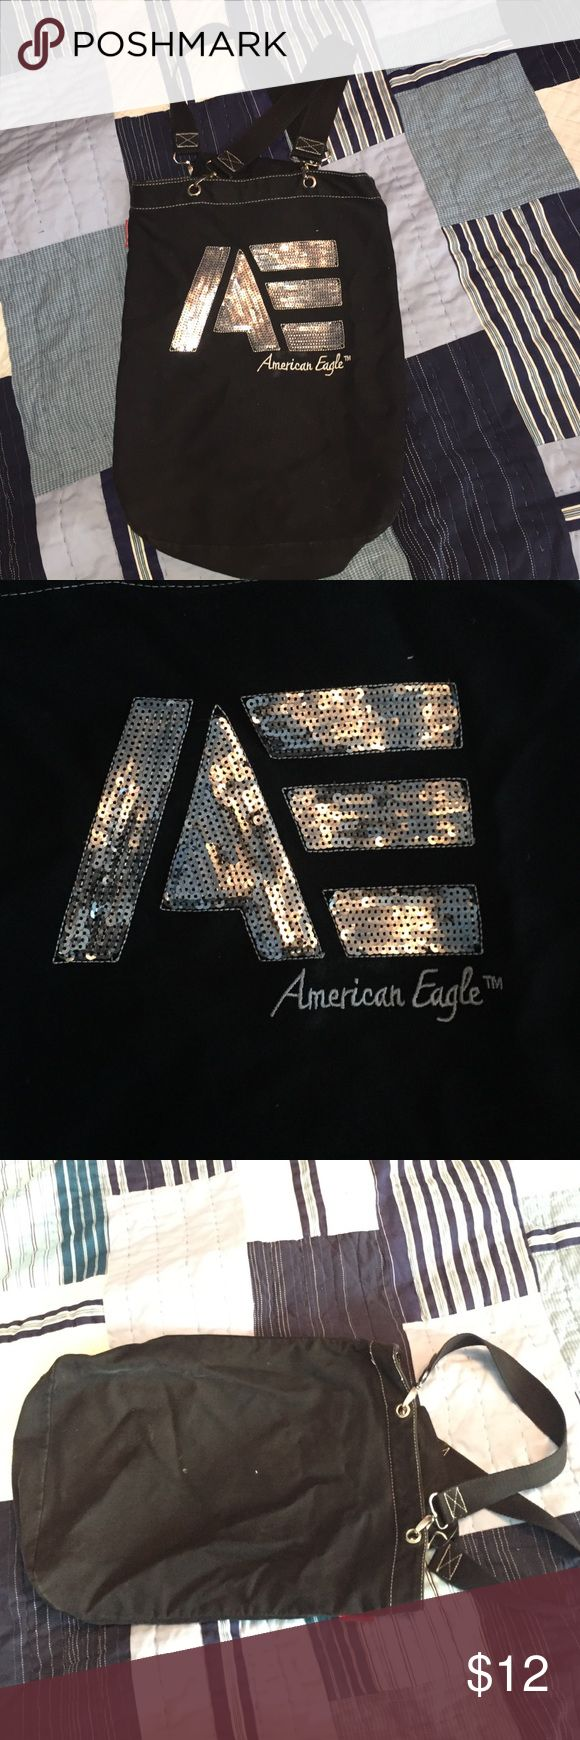 American Eagle bag Black cloth bag with sequin design on front. Plain black back and two straps. Used it to carry folders to class. Washable. American Eagle Outfitters Bags Shoulder Bags